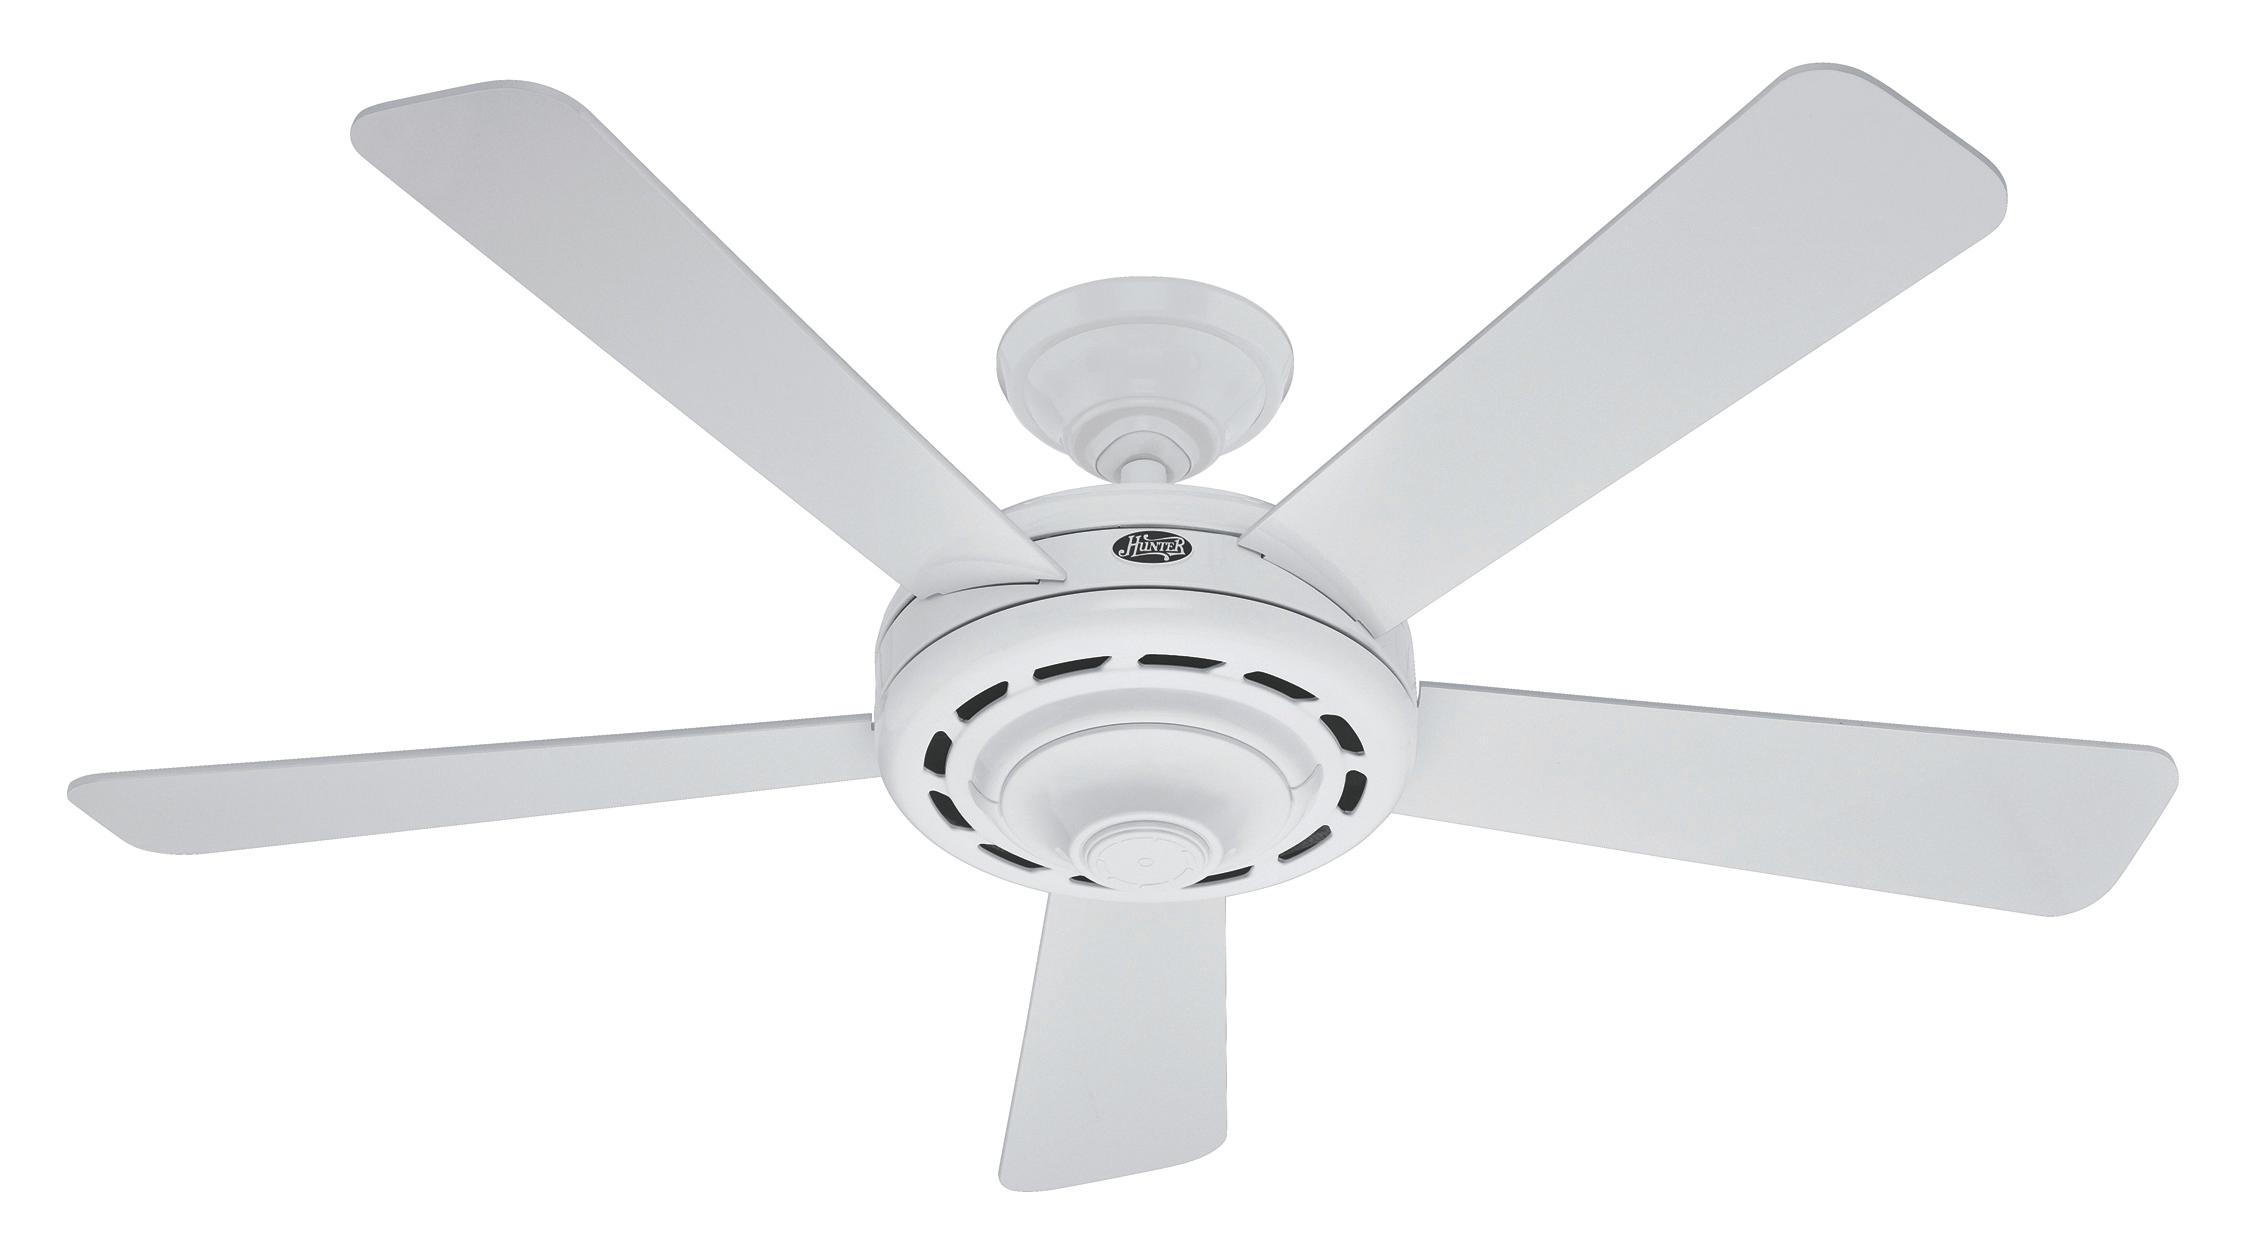 99 size of ceiling fan for bedroom bedroom fan direction for What size ceiling fan do i need